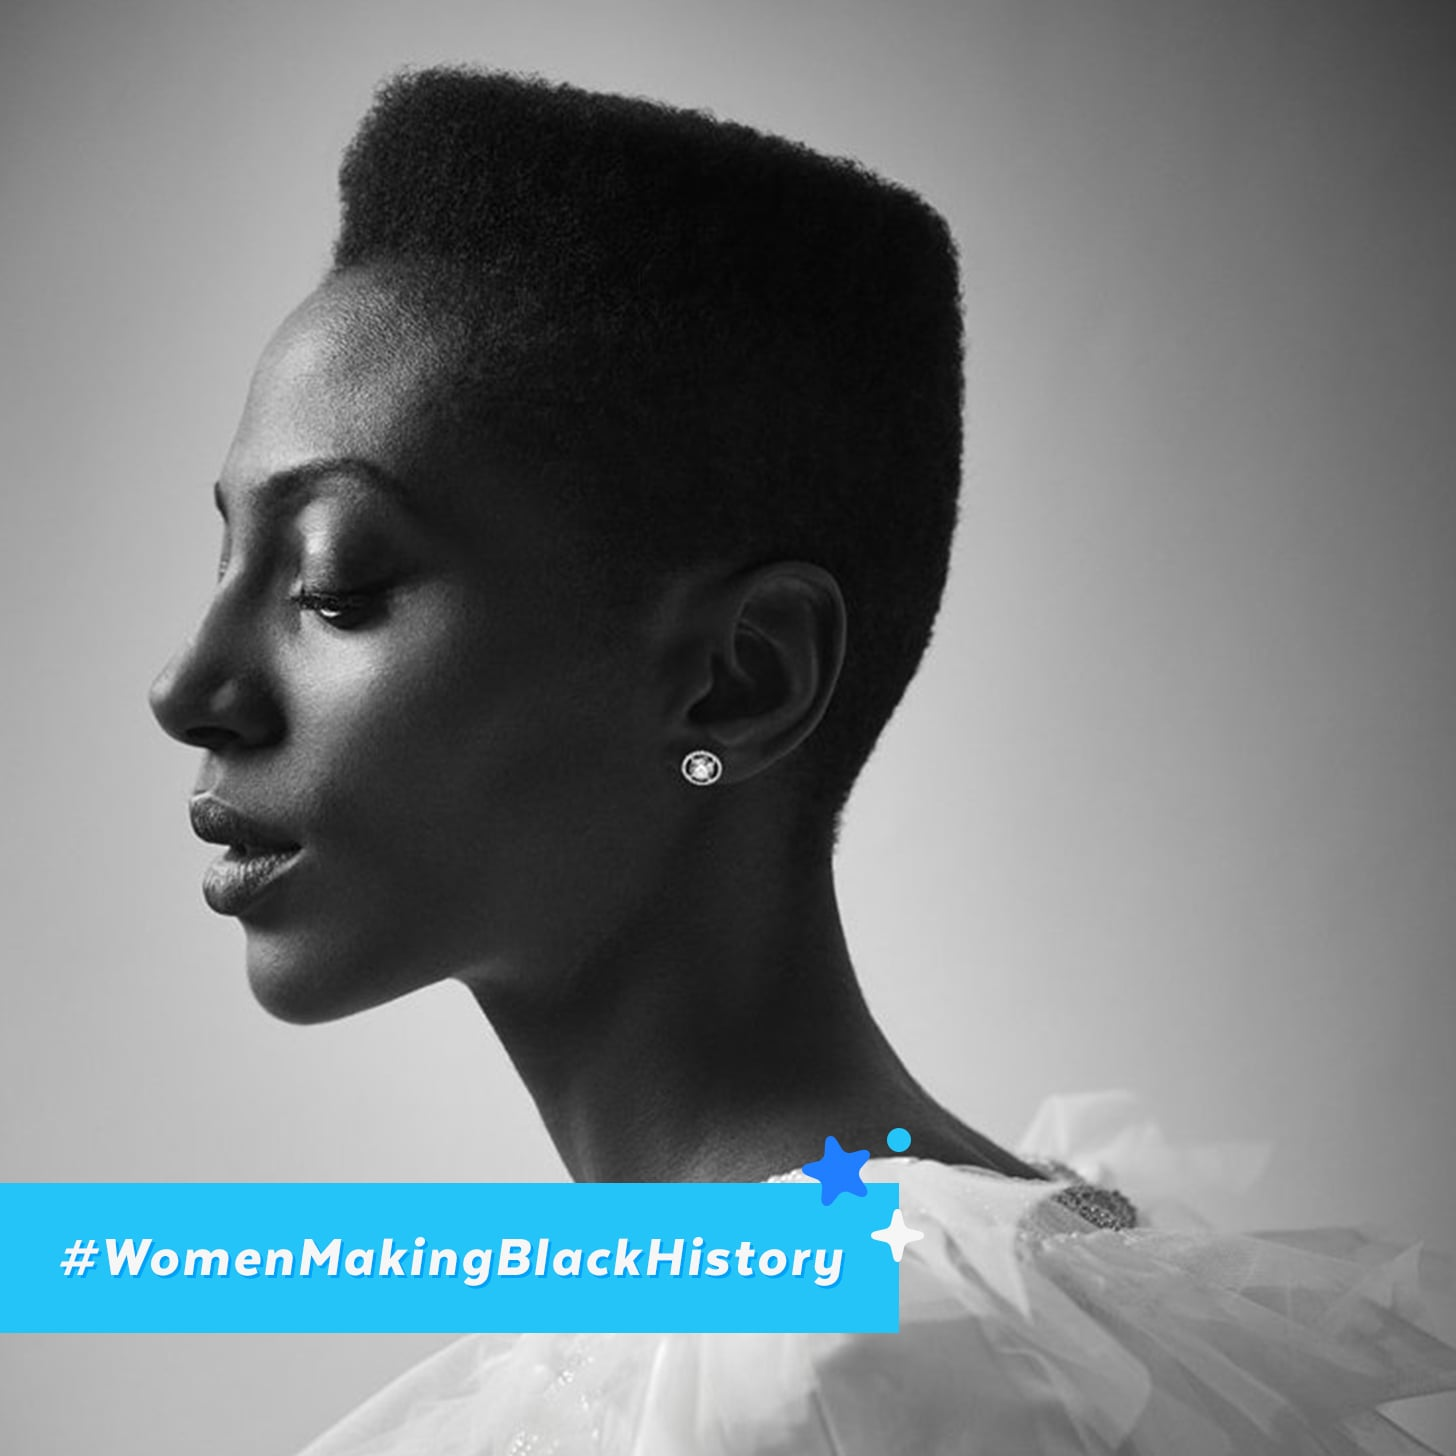 Yrsa Daley-Ward Is Laying Her Pain Bare and Turning It Into Uplifting, Unconventional Poetry